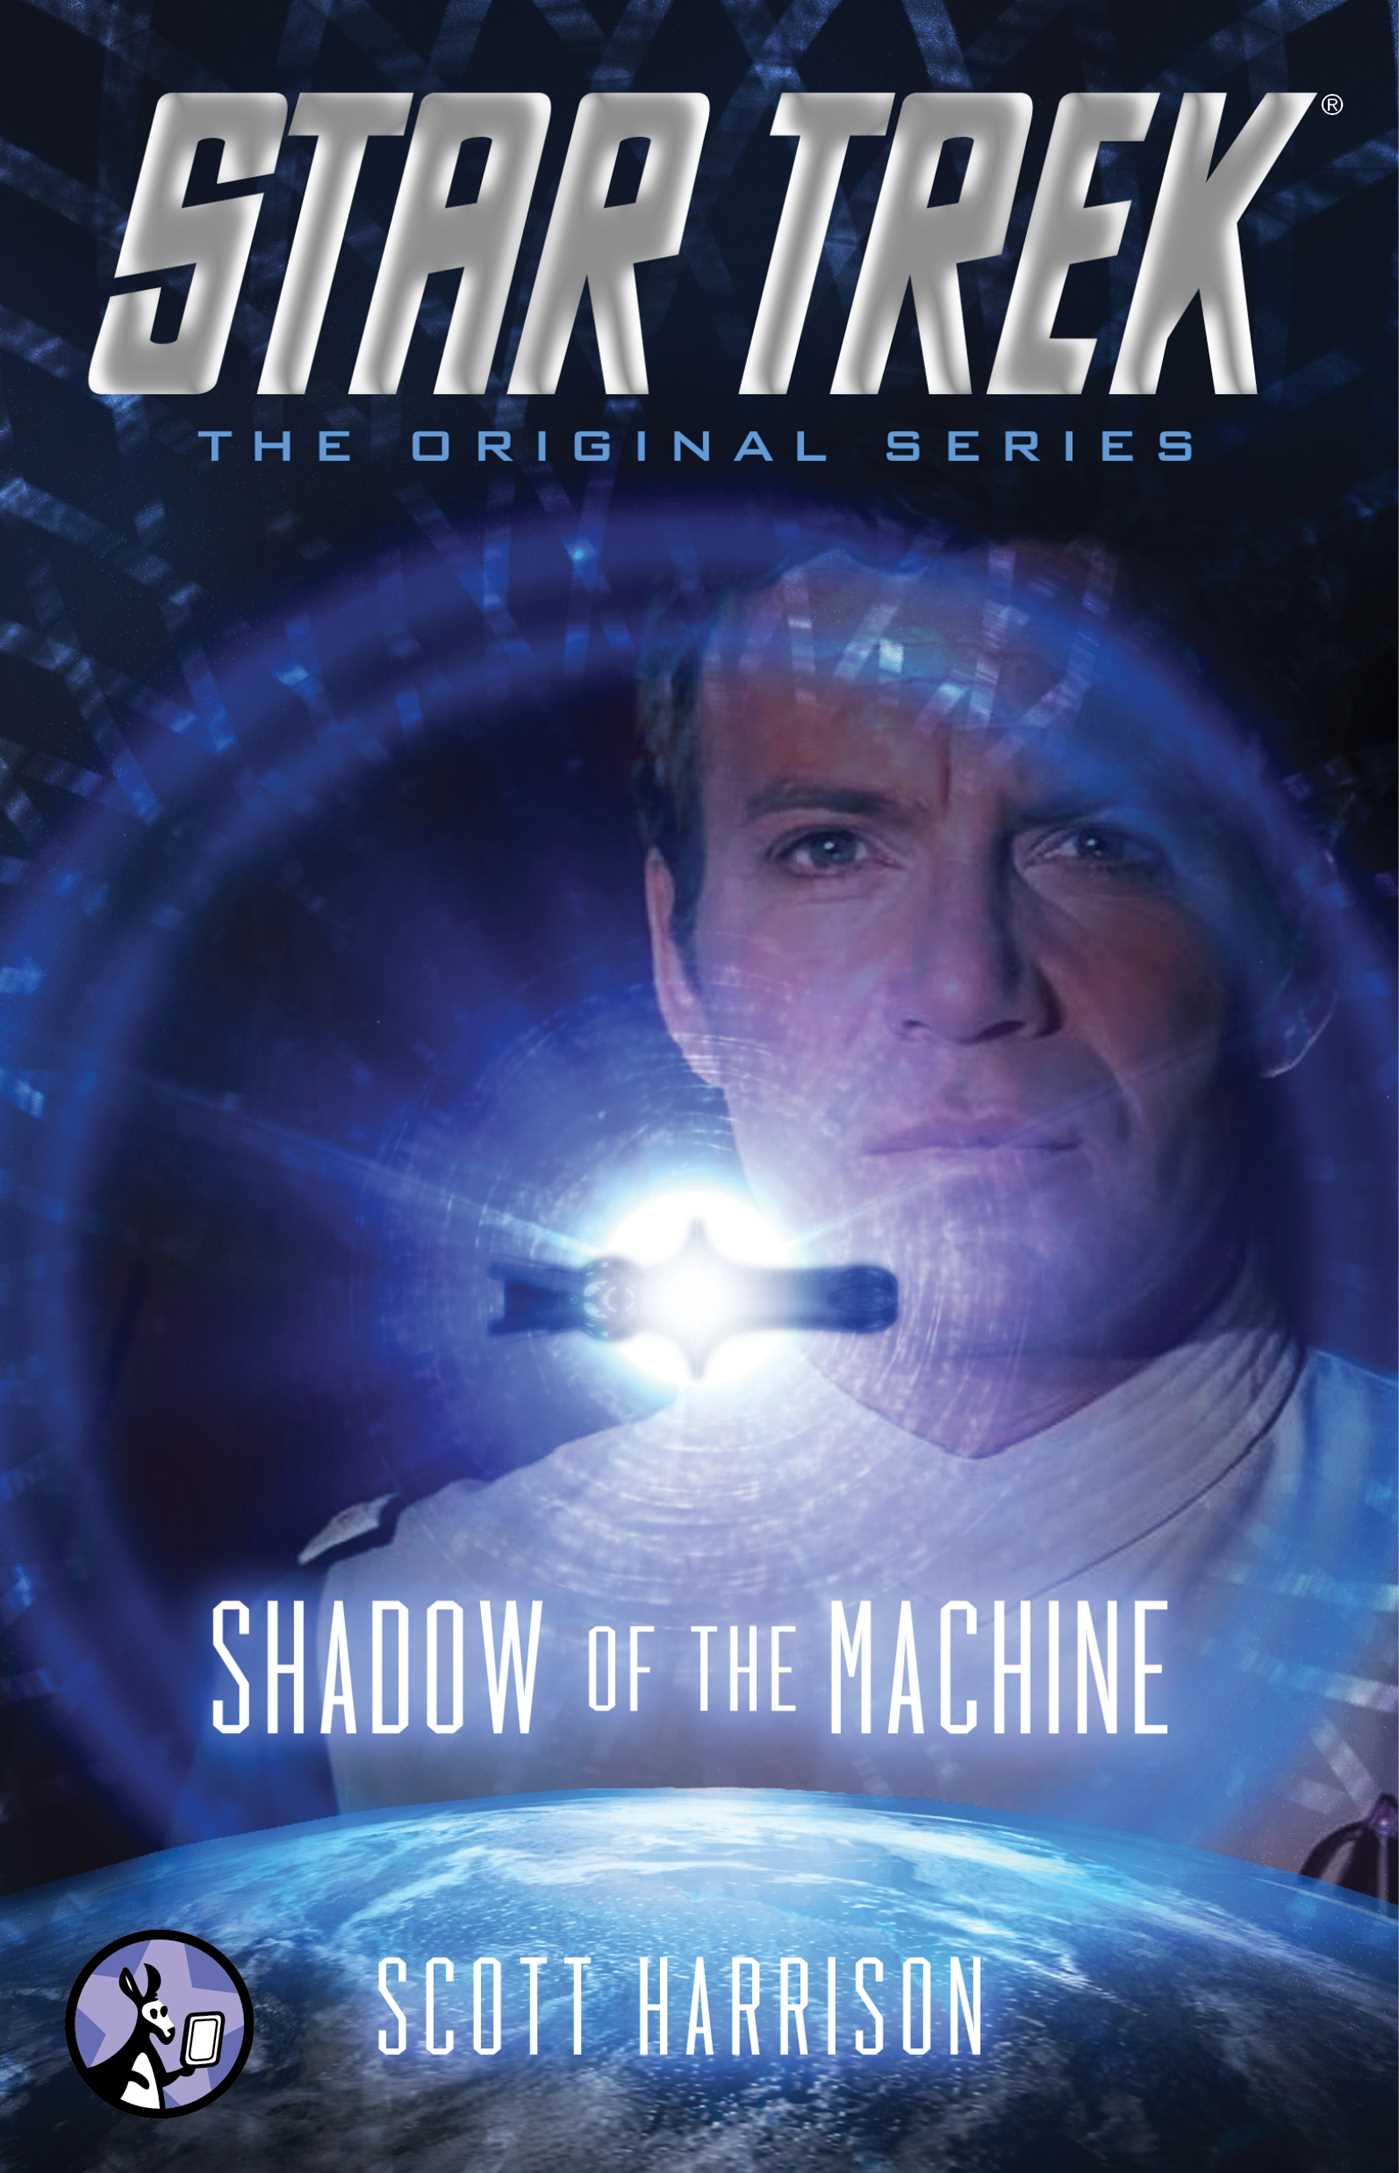 Star trek the original series shadow of the machine 9781476756356 hr